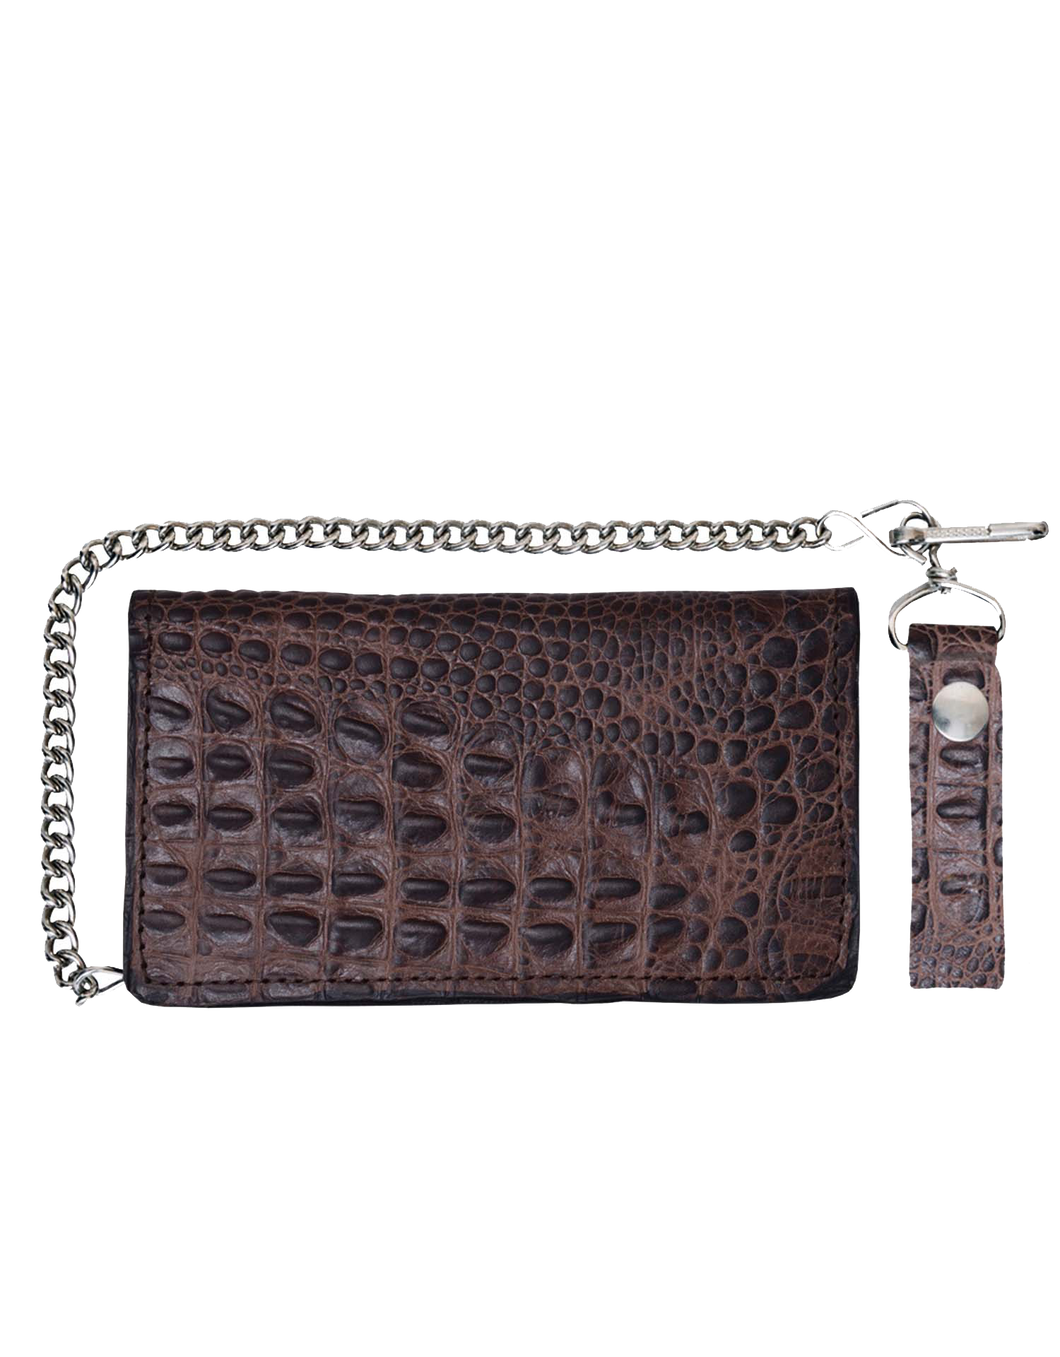 UNIK Leather Biker Chain Wallet - Ghost Rider Leather